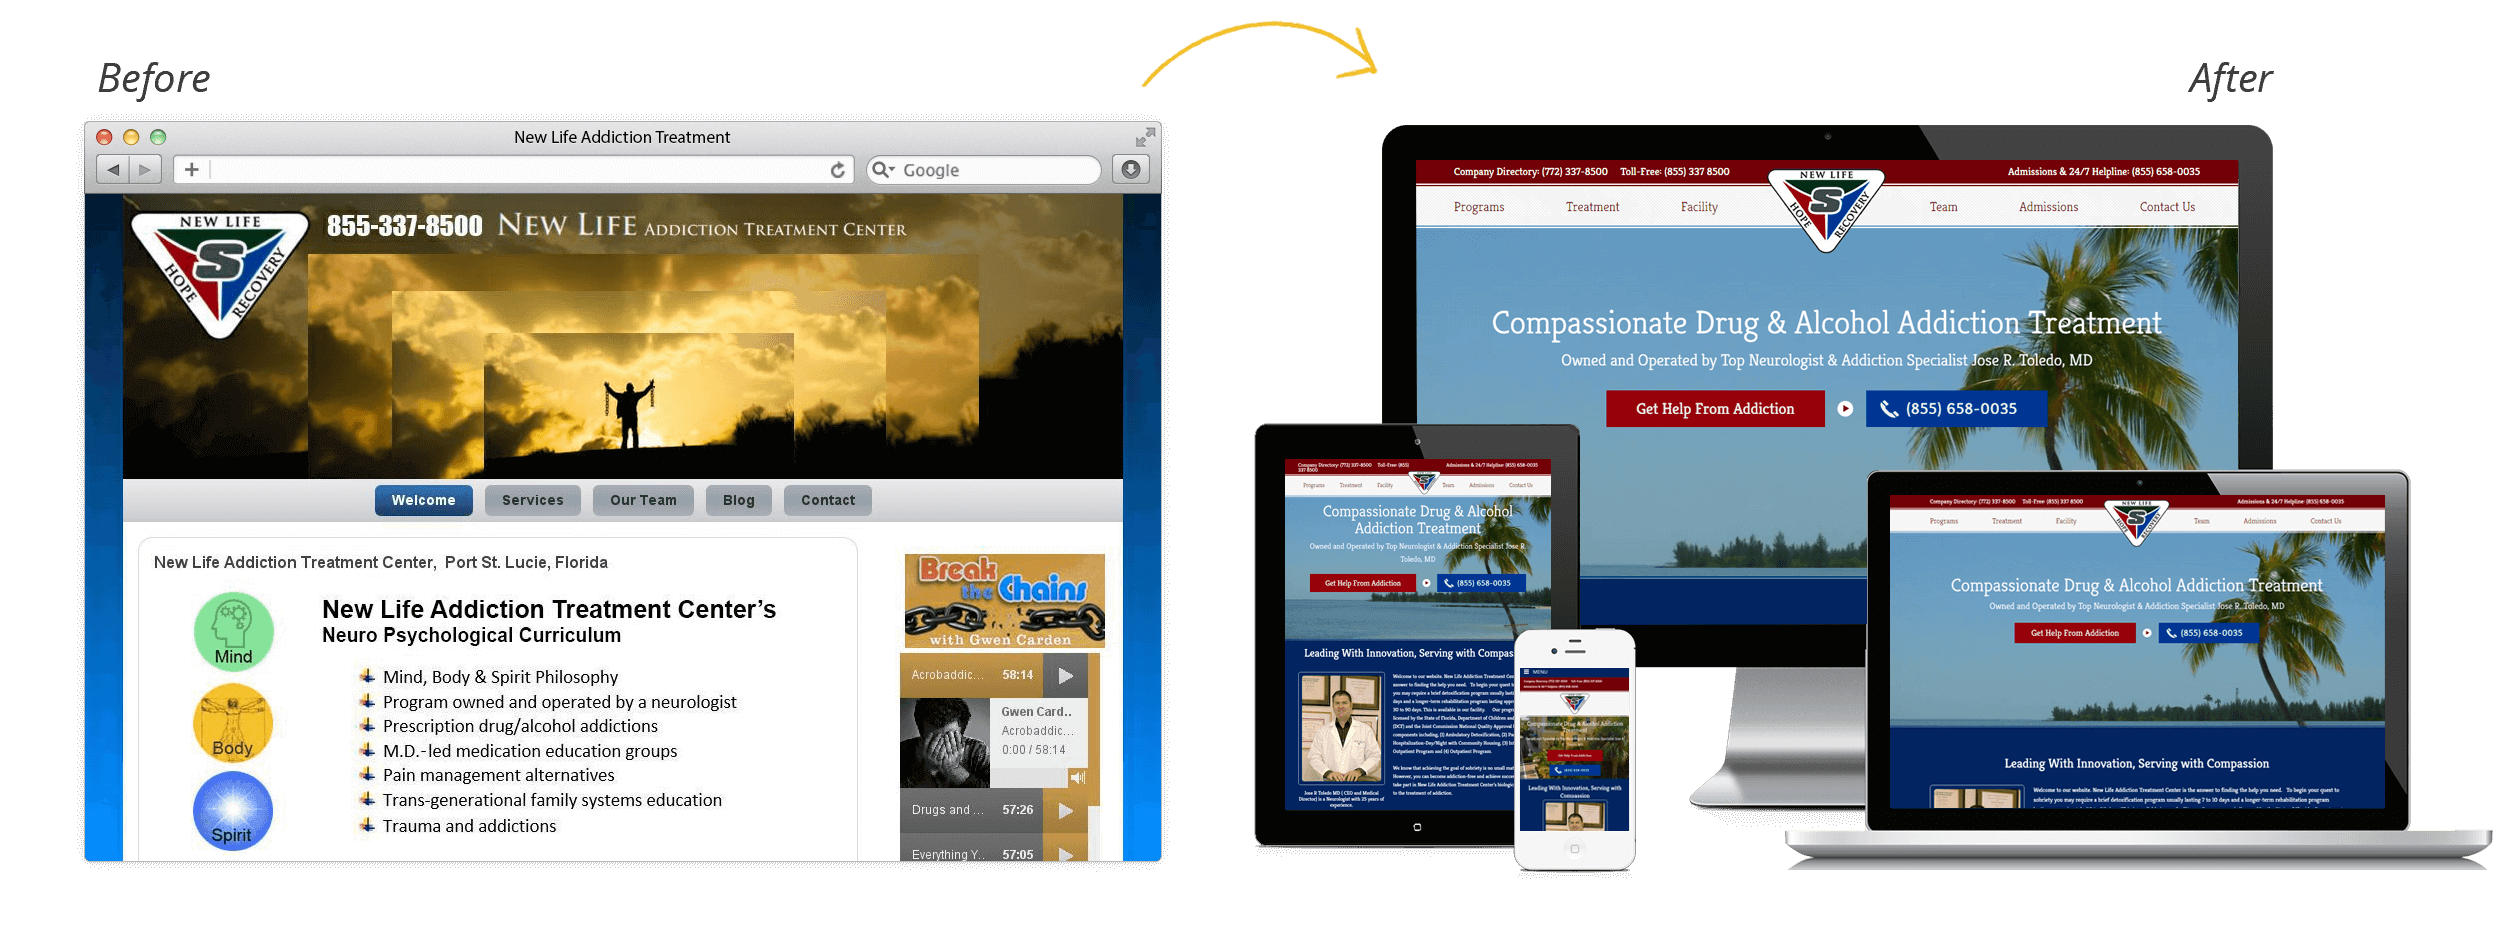 New Life Addiction Treatment